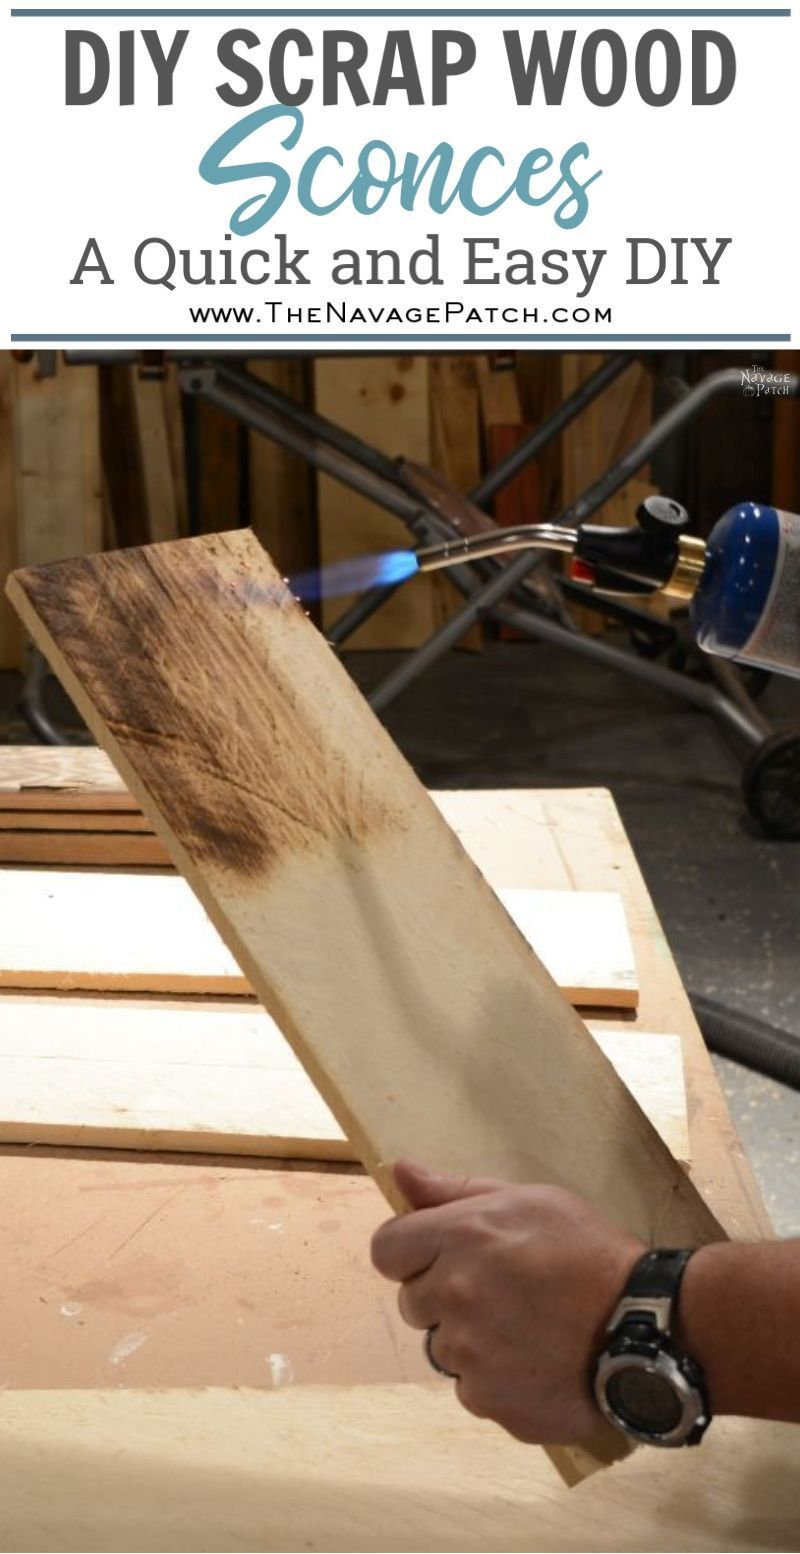 Diy wall sconces from scrap wood wood sconce diy wall wood